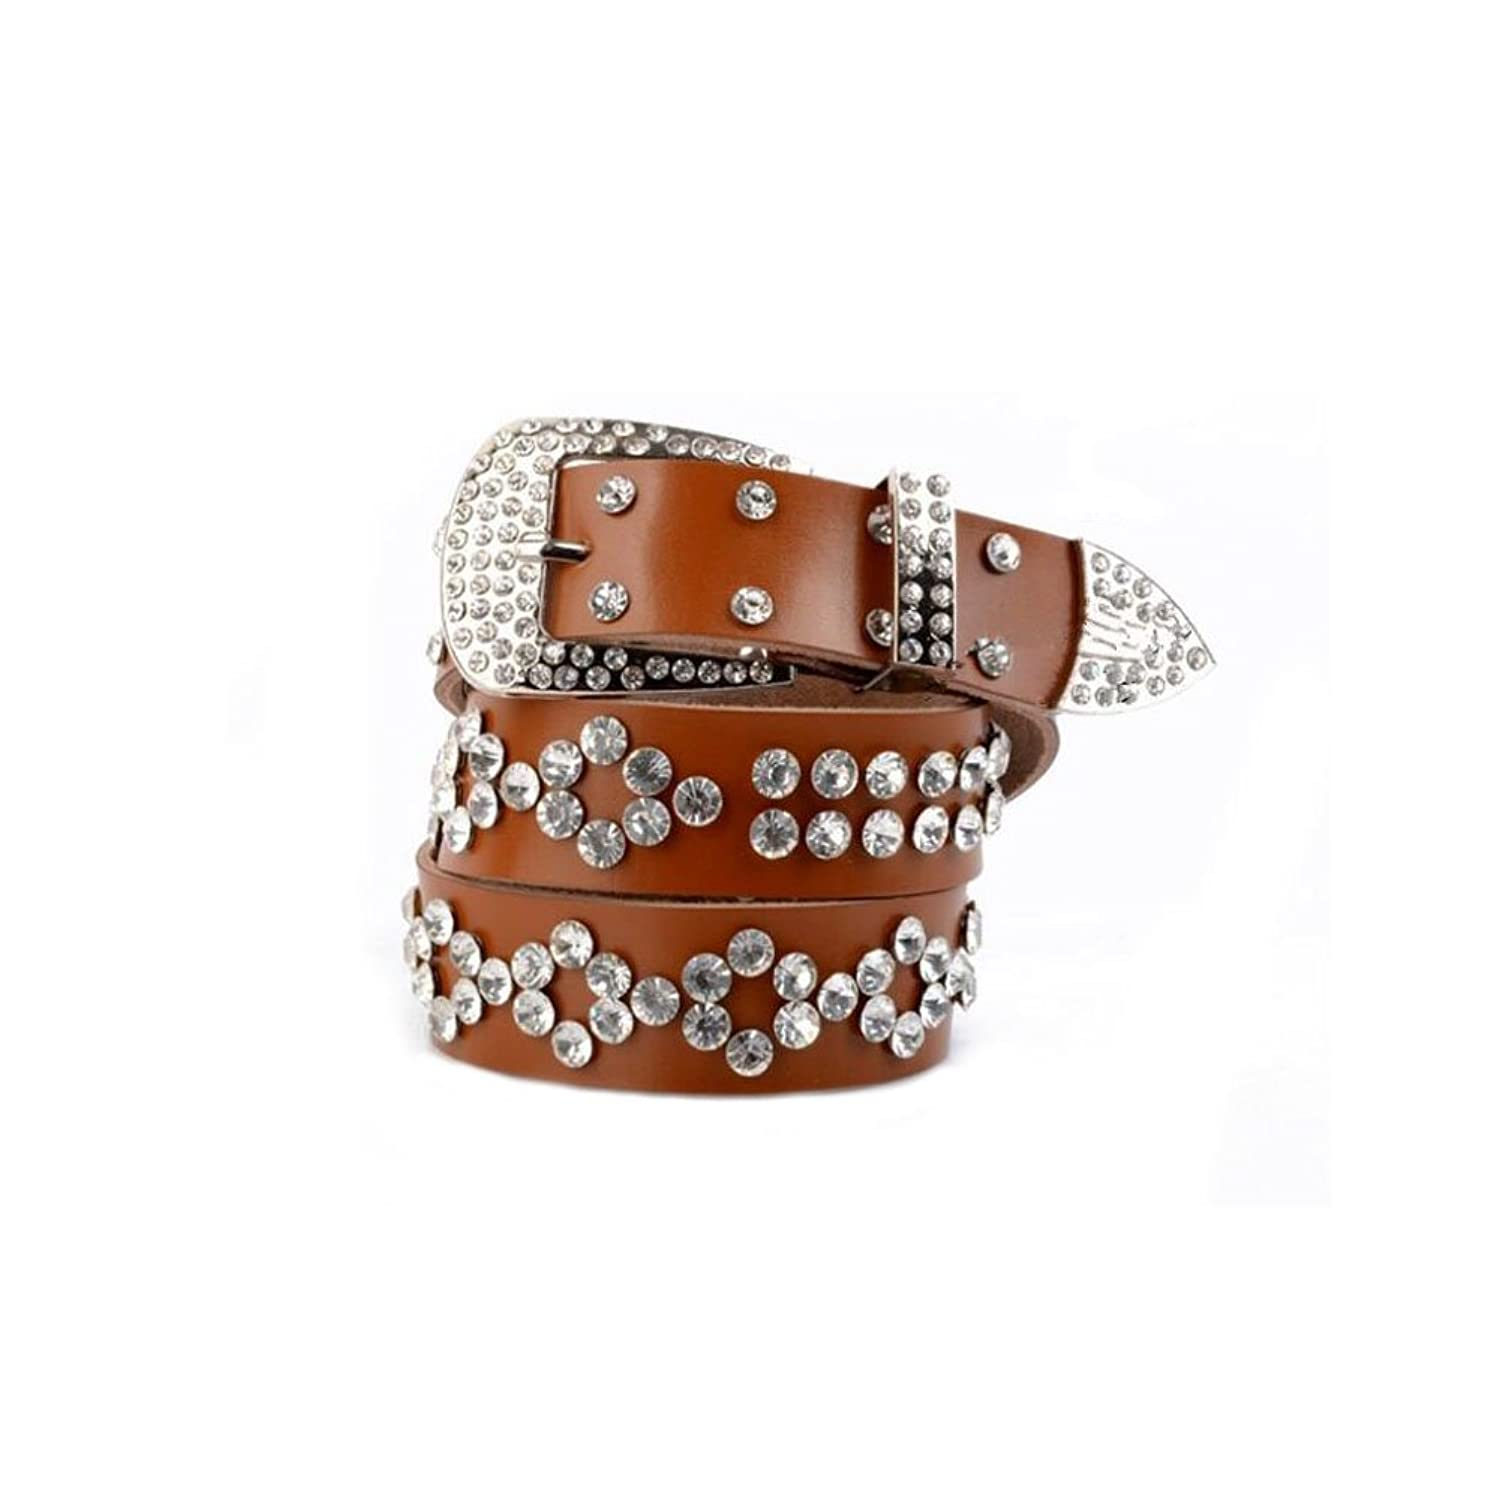 Sitong Women's fashion rhinestone pin buckle wide leather belt(6 colors)